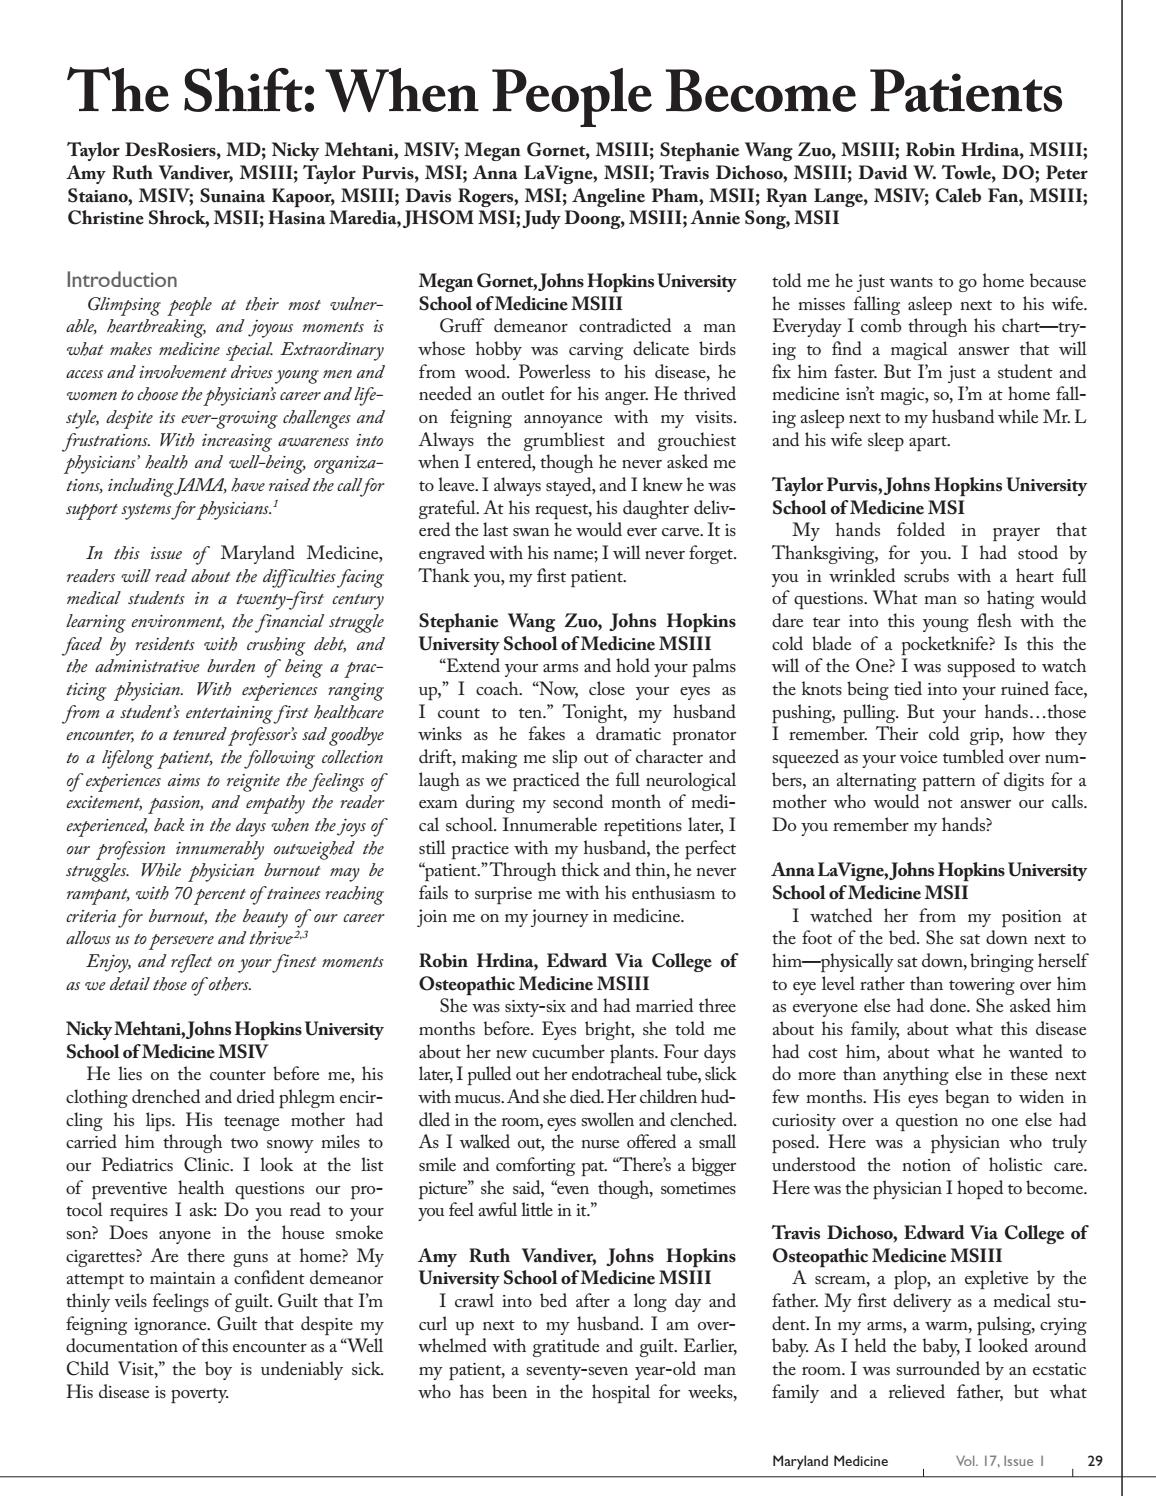 Maryland Medicine Vol 17 Issue 1 By The Maryland State Medical Society Medchi Issuu